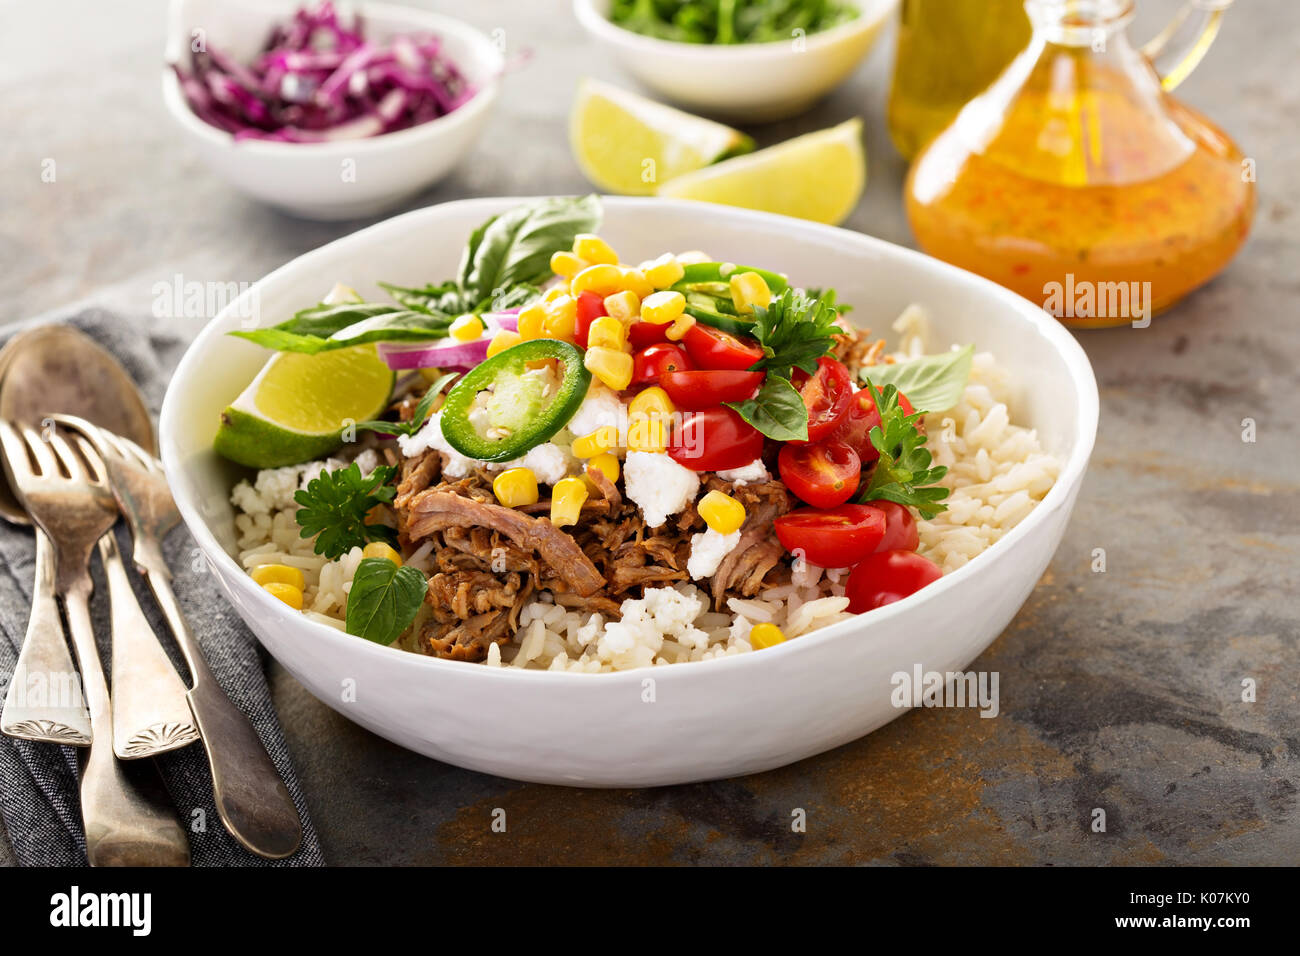 Dinner bowl with rice and pulled pork - Stock Image